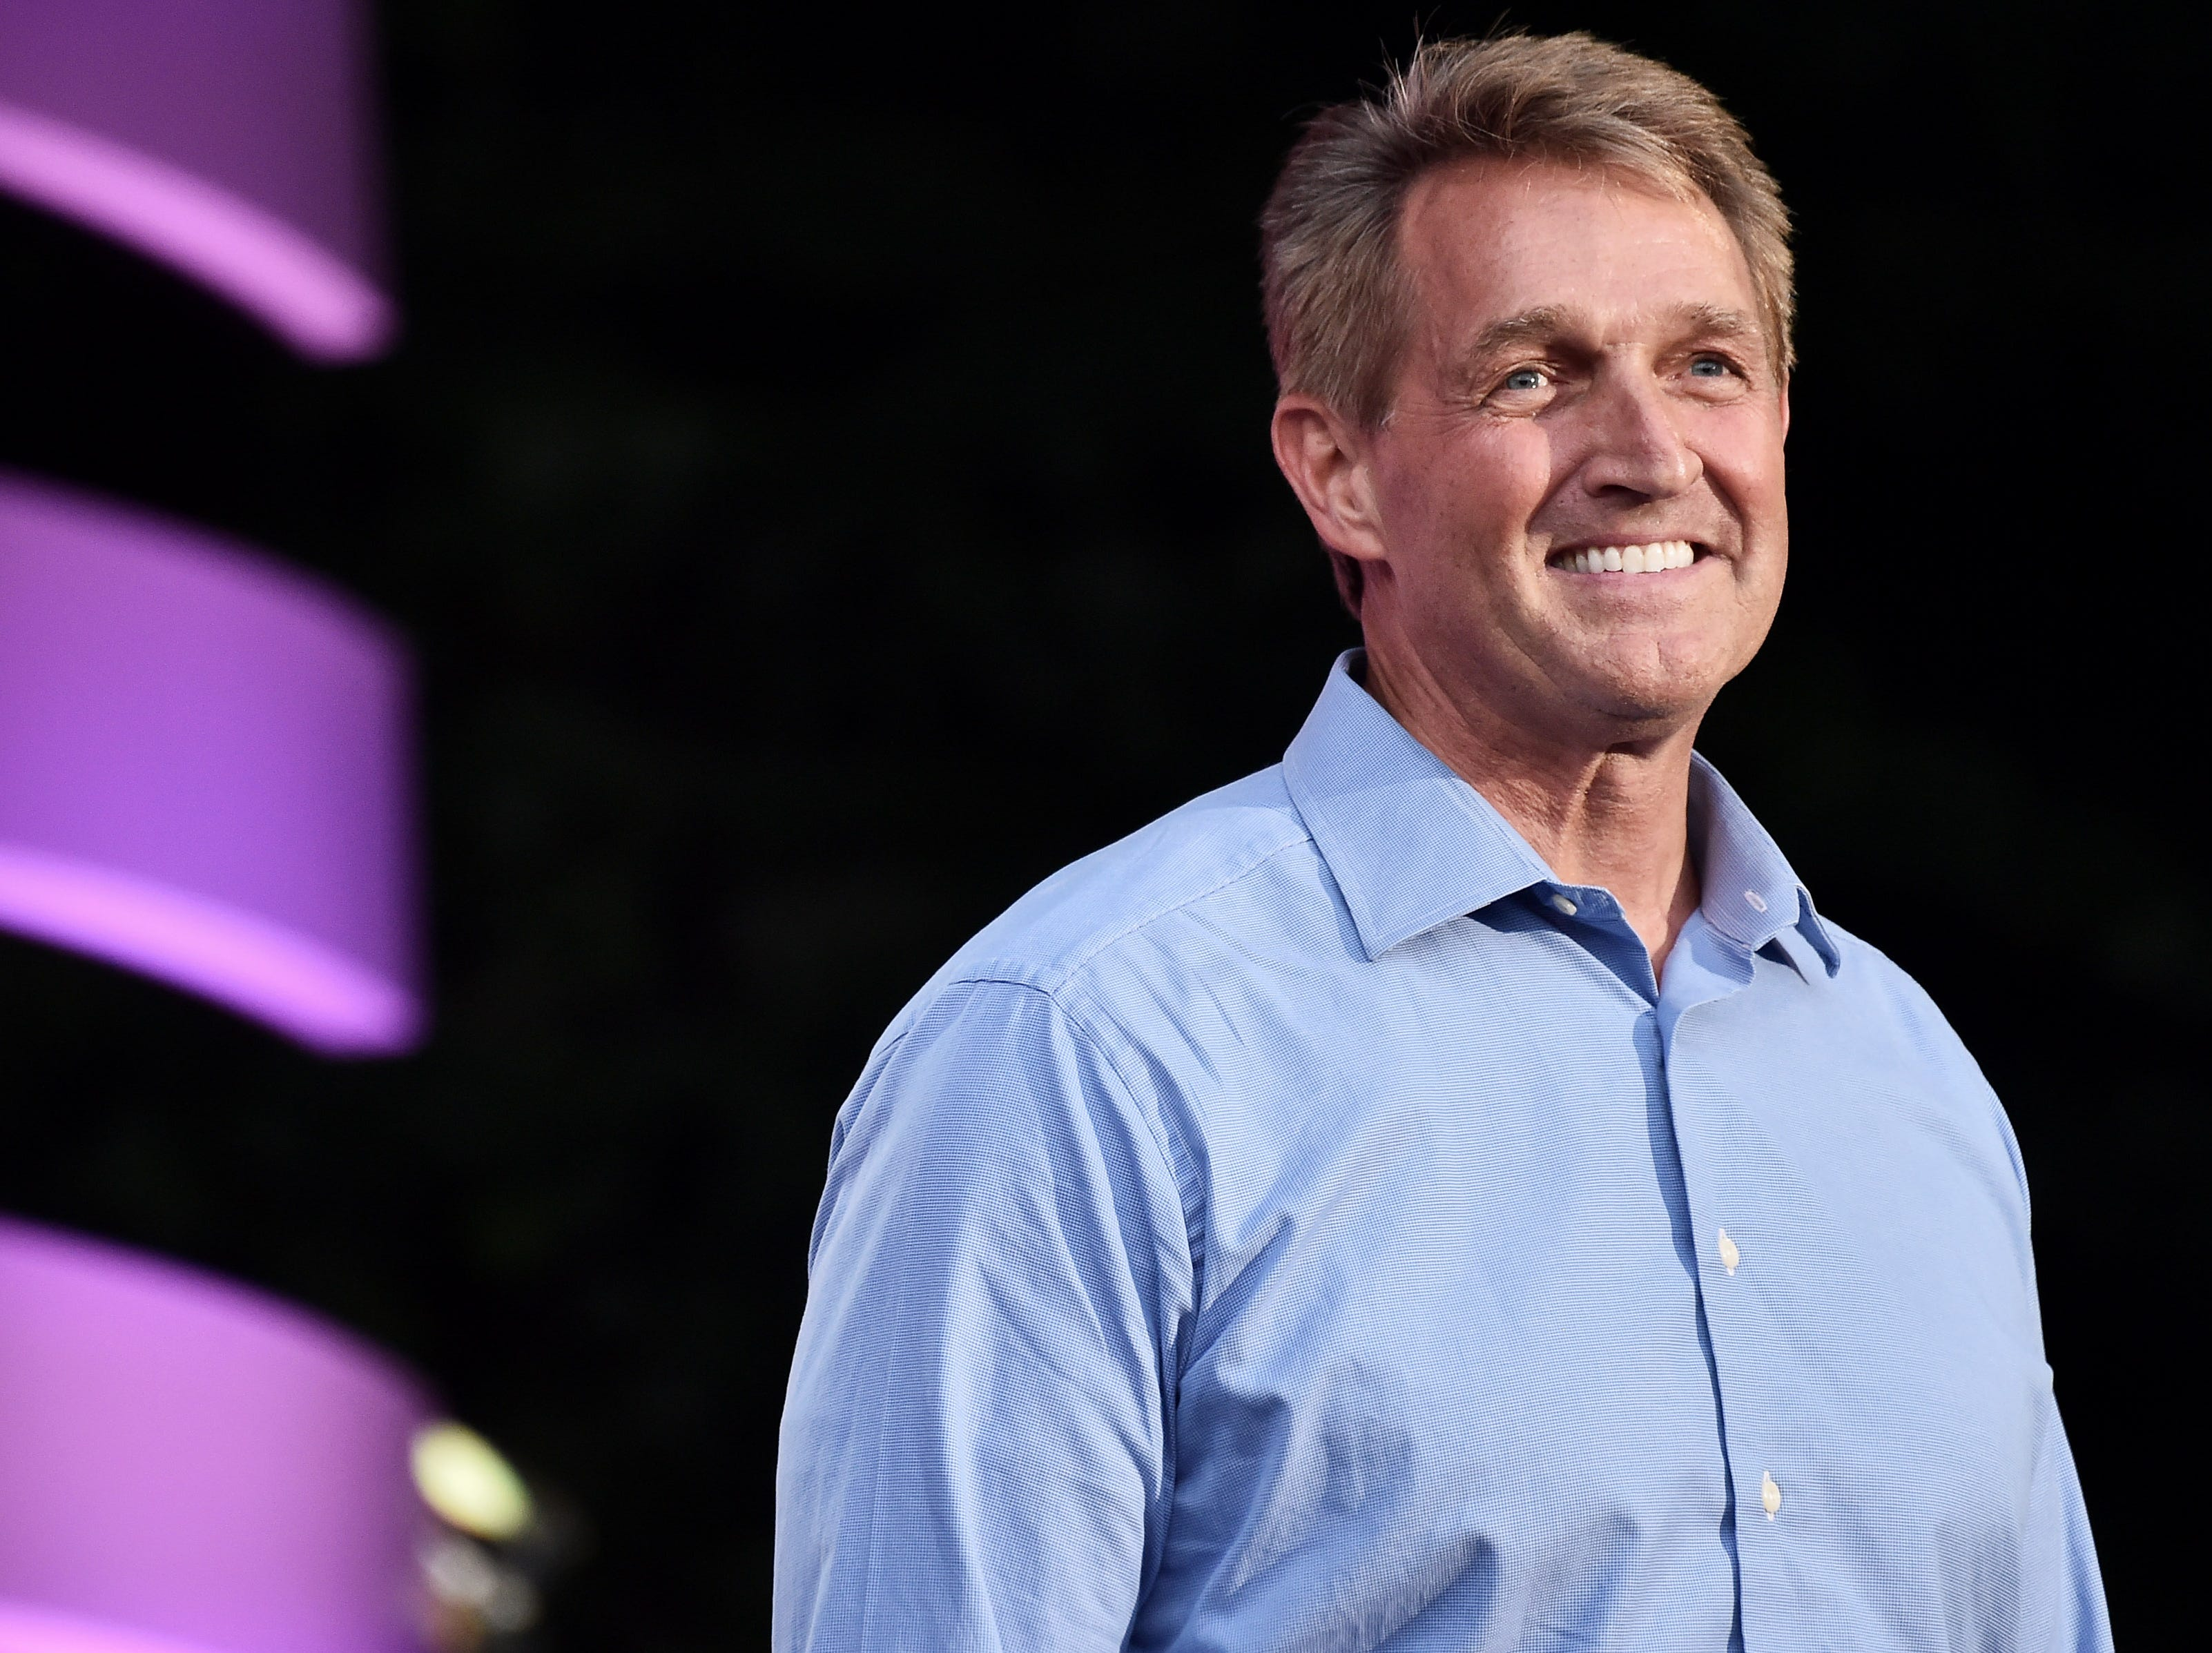 NEW YORK, NY - SEPTEMBER 29:  United States Senator Jeff Flake performs onstage during the 2018 Global Citizen Concert at Central Park, Great Lawn on September 29, 2018 in New York City.  (Photo by Steven Ferdman/WireImage) ORG XMIT: 775224758 ORIG FILE ID: 1043278210